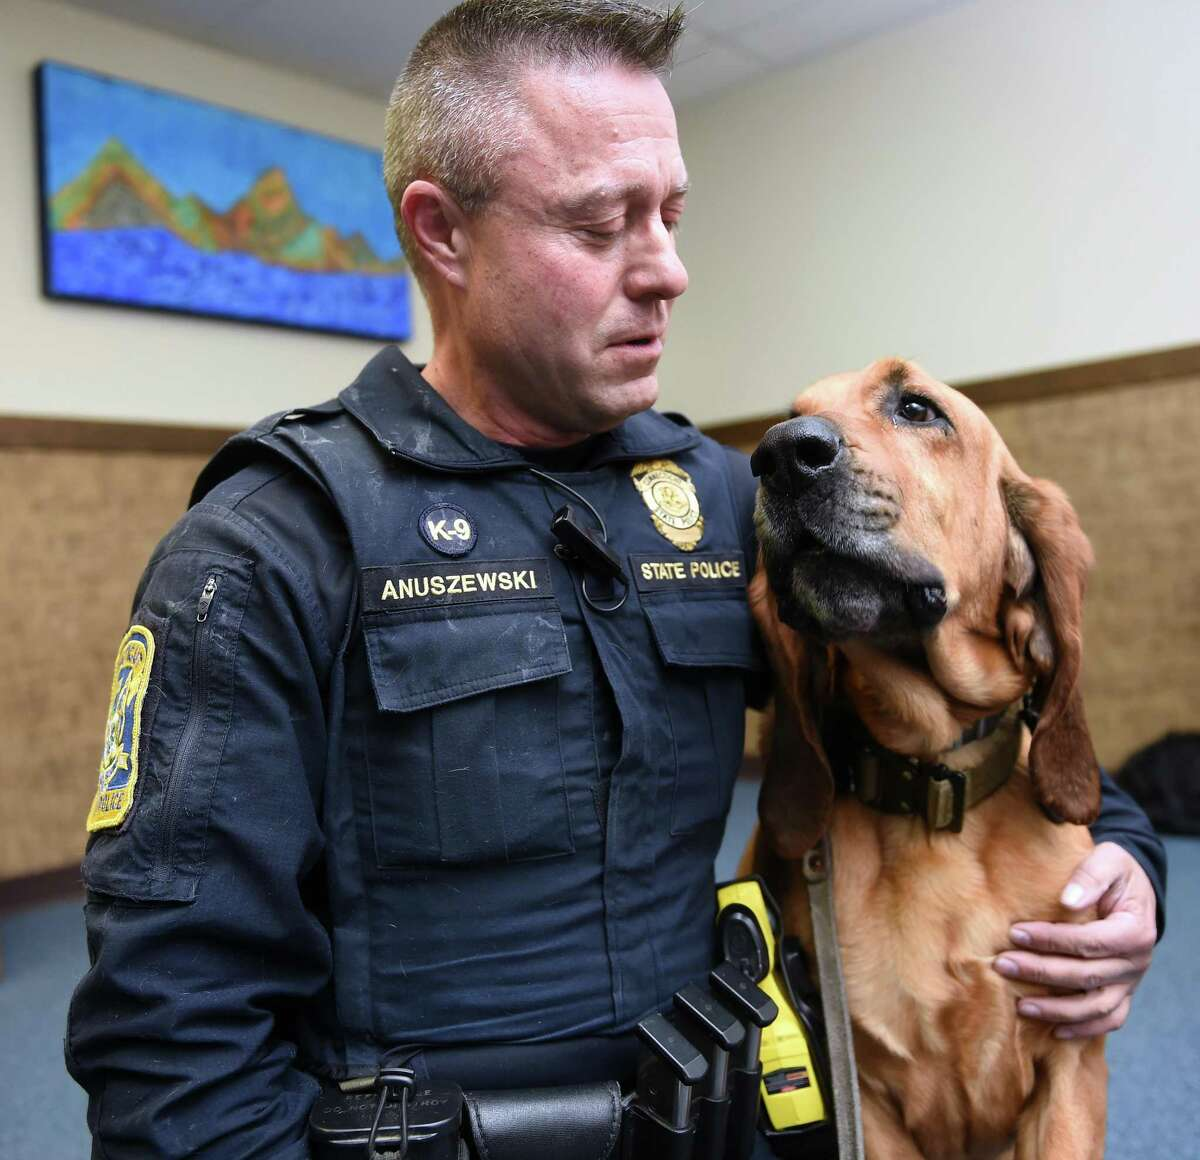 Trooper 1st Class Edward Anuszewski, of the state police, with his K-9 partner, Texas, a bloodhound tracking dog, at the State Police Canine Unit Training Center in Meriden on Monday.